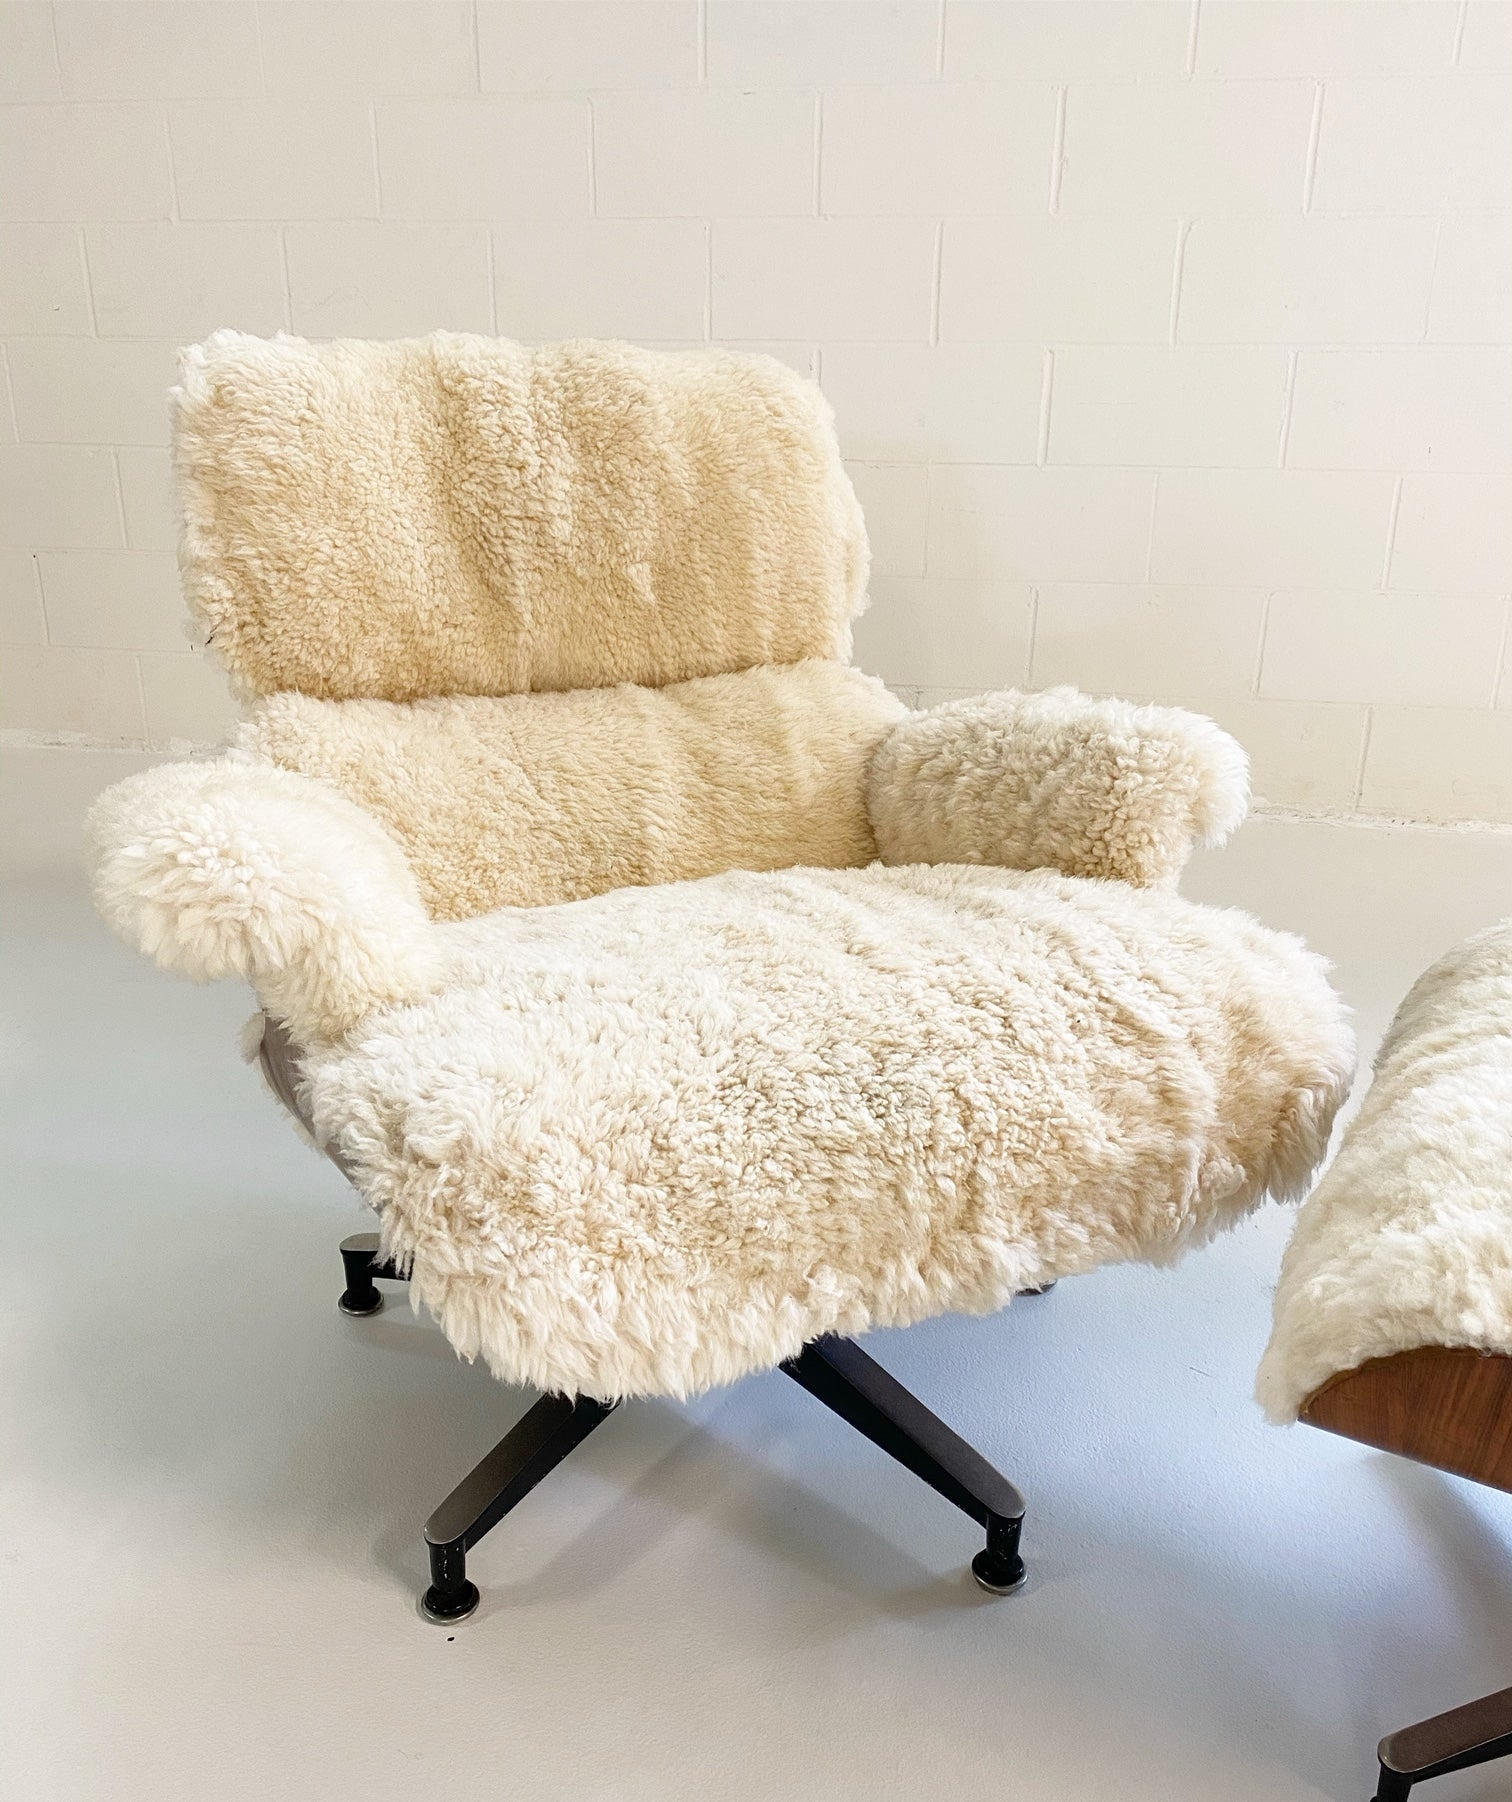 670 Lounge Chair and 671 Ottoman in California Sheepskin